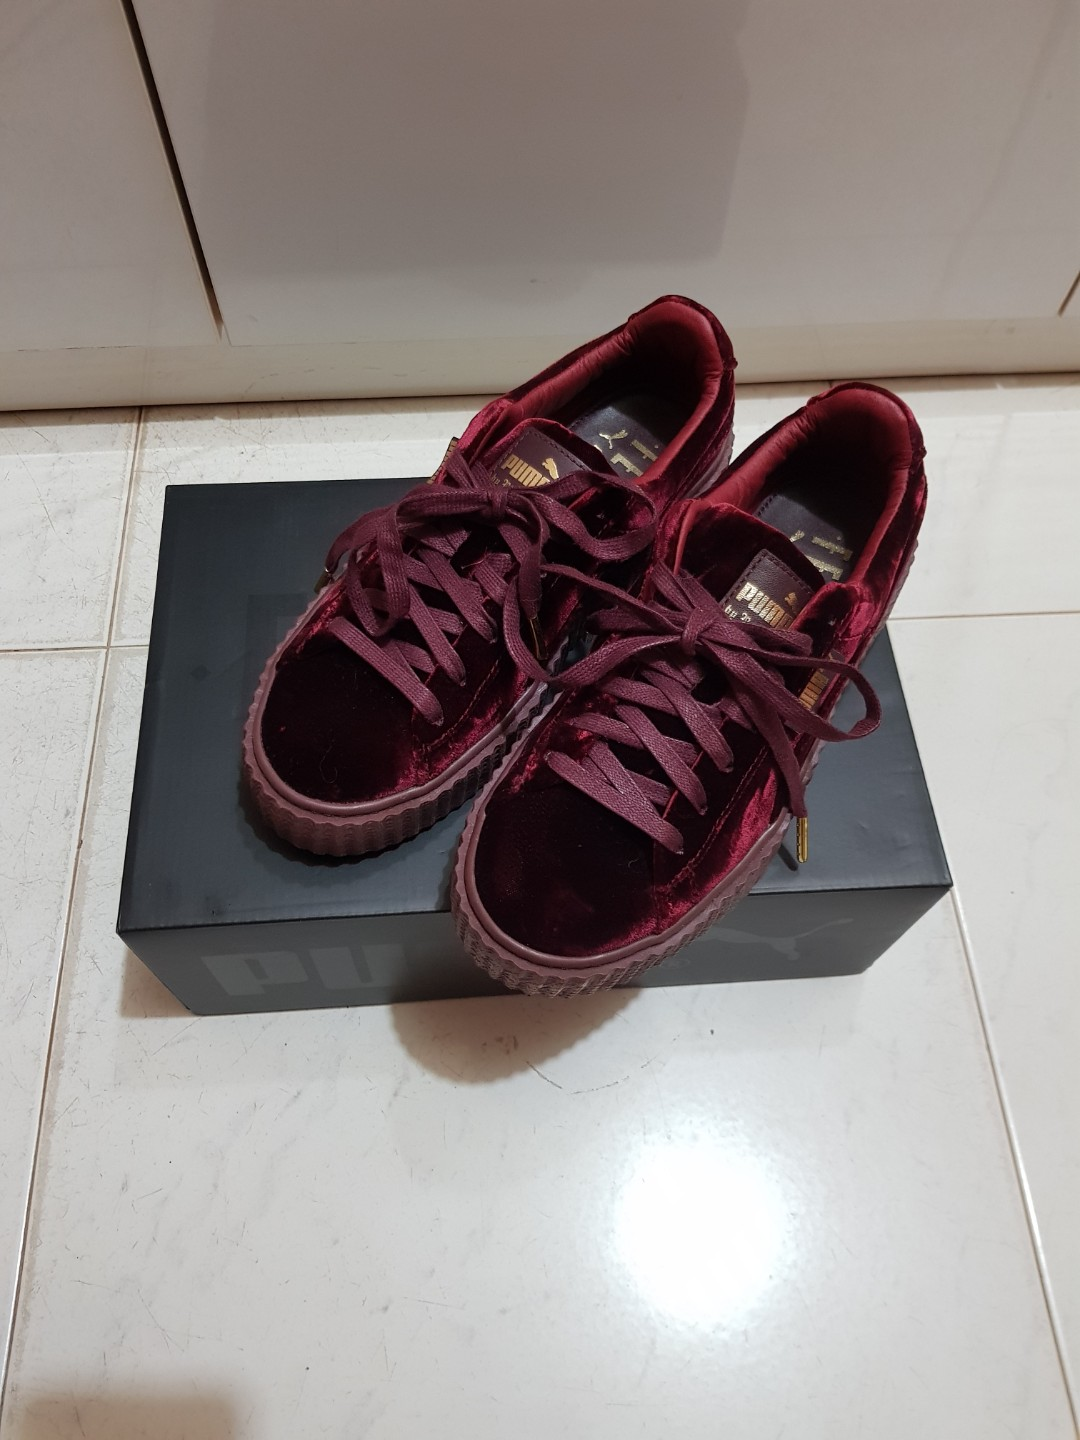 32d88034bf4f Home · Women s Fashion · Shoes · Sneakers. photo photo ...